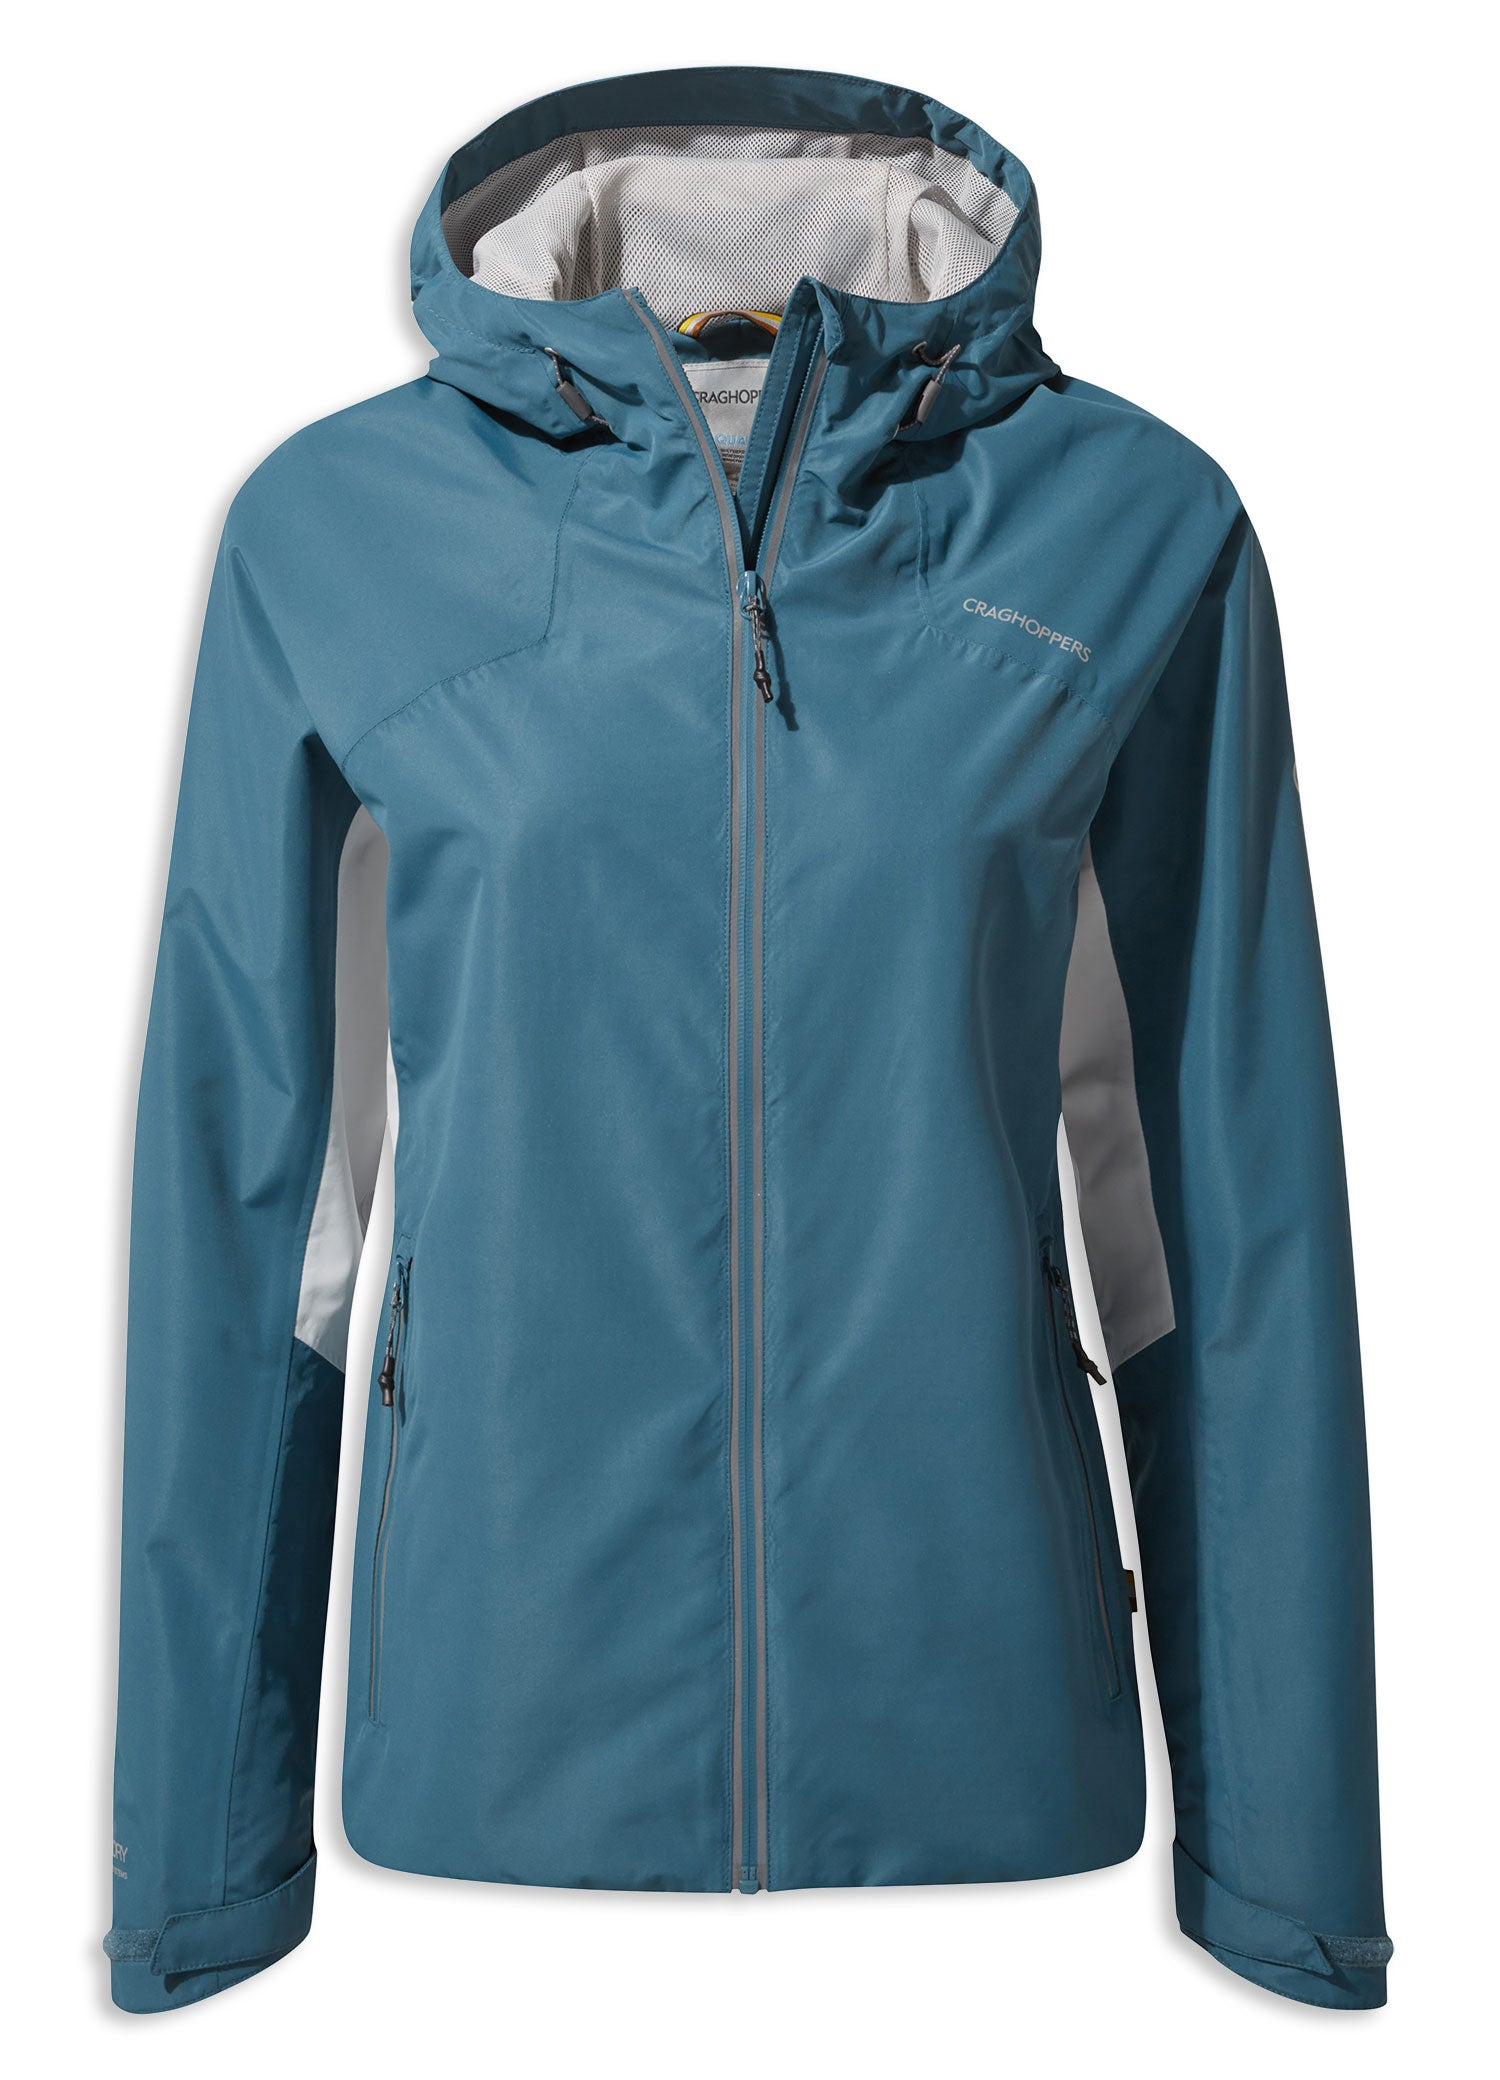 Venetian Teal Craghoppers Horizon Ladies Waterproof Jacket